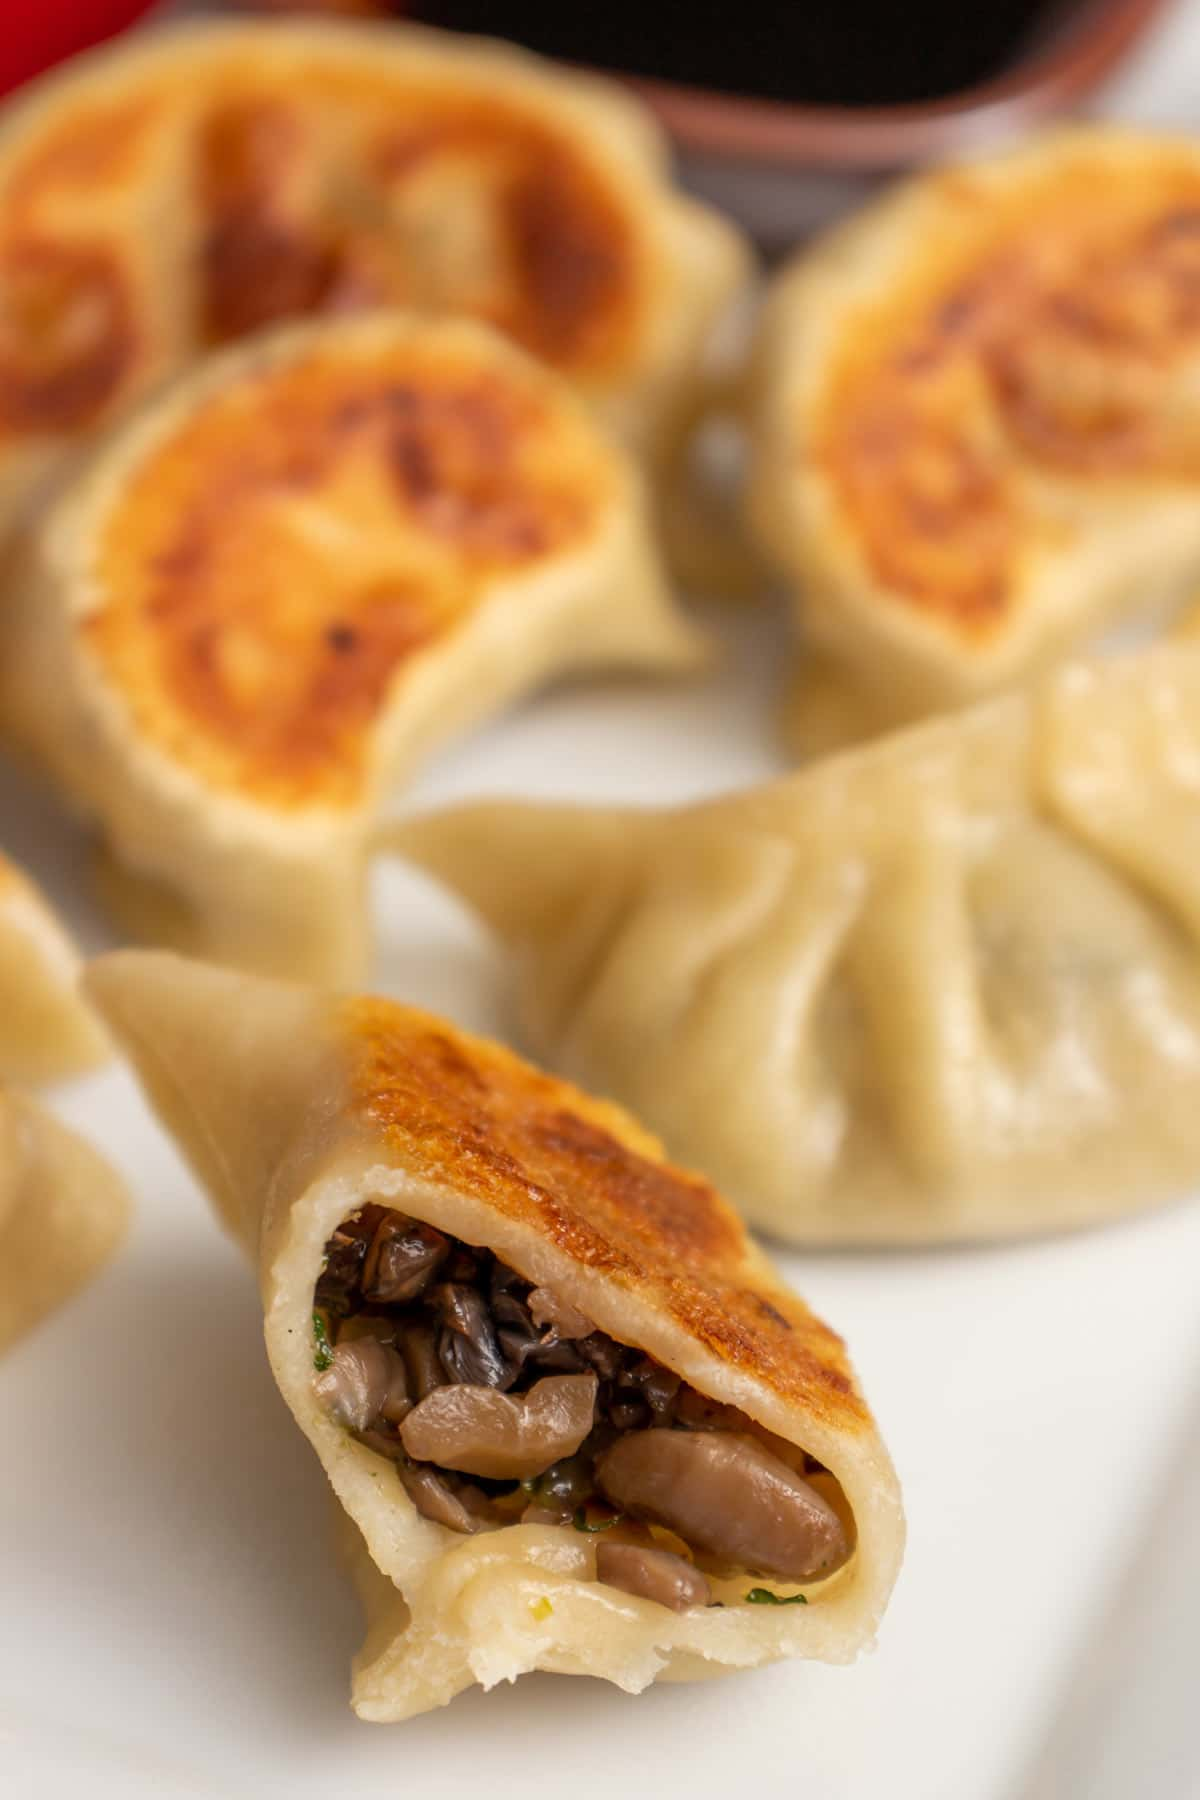 Closeup of a half-eaten pan-fried dumpling showing off the brown mushroom filling.